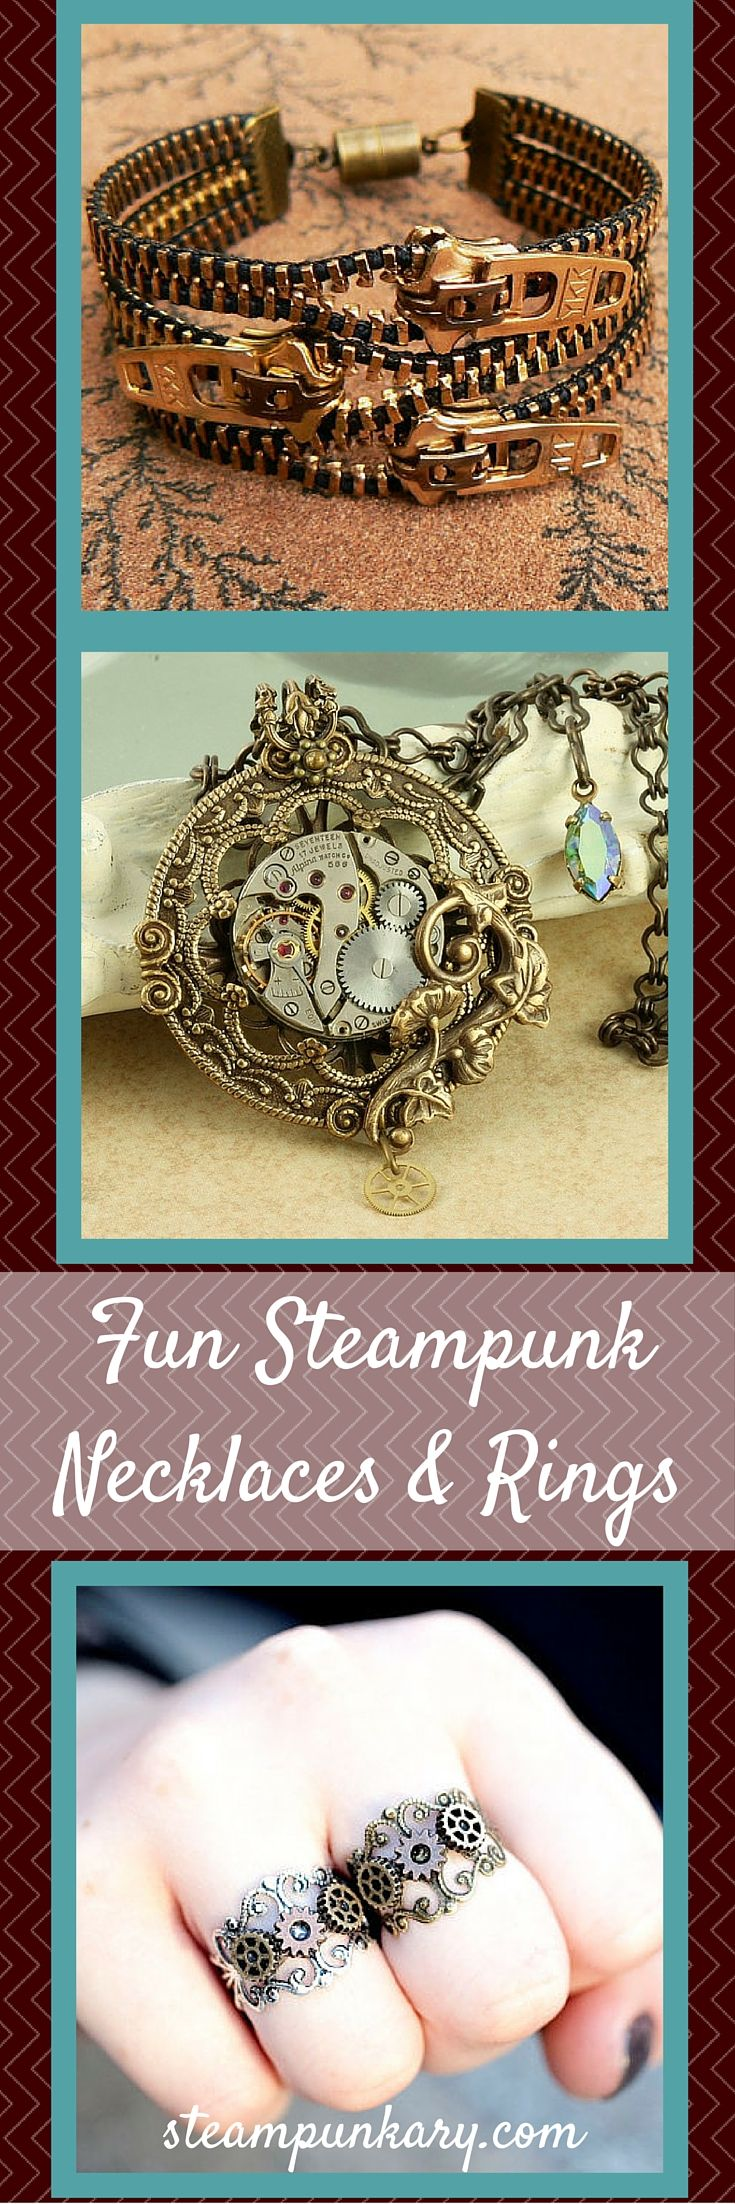 Fun Steampunk Necklaces, Bracelets and Rings for Men and Women ...